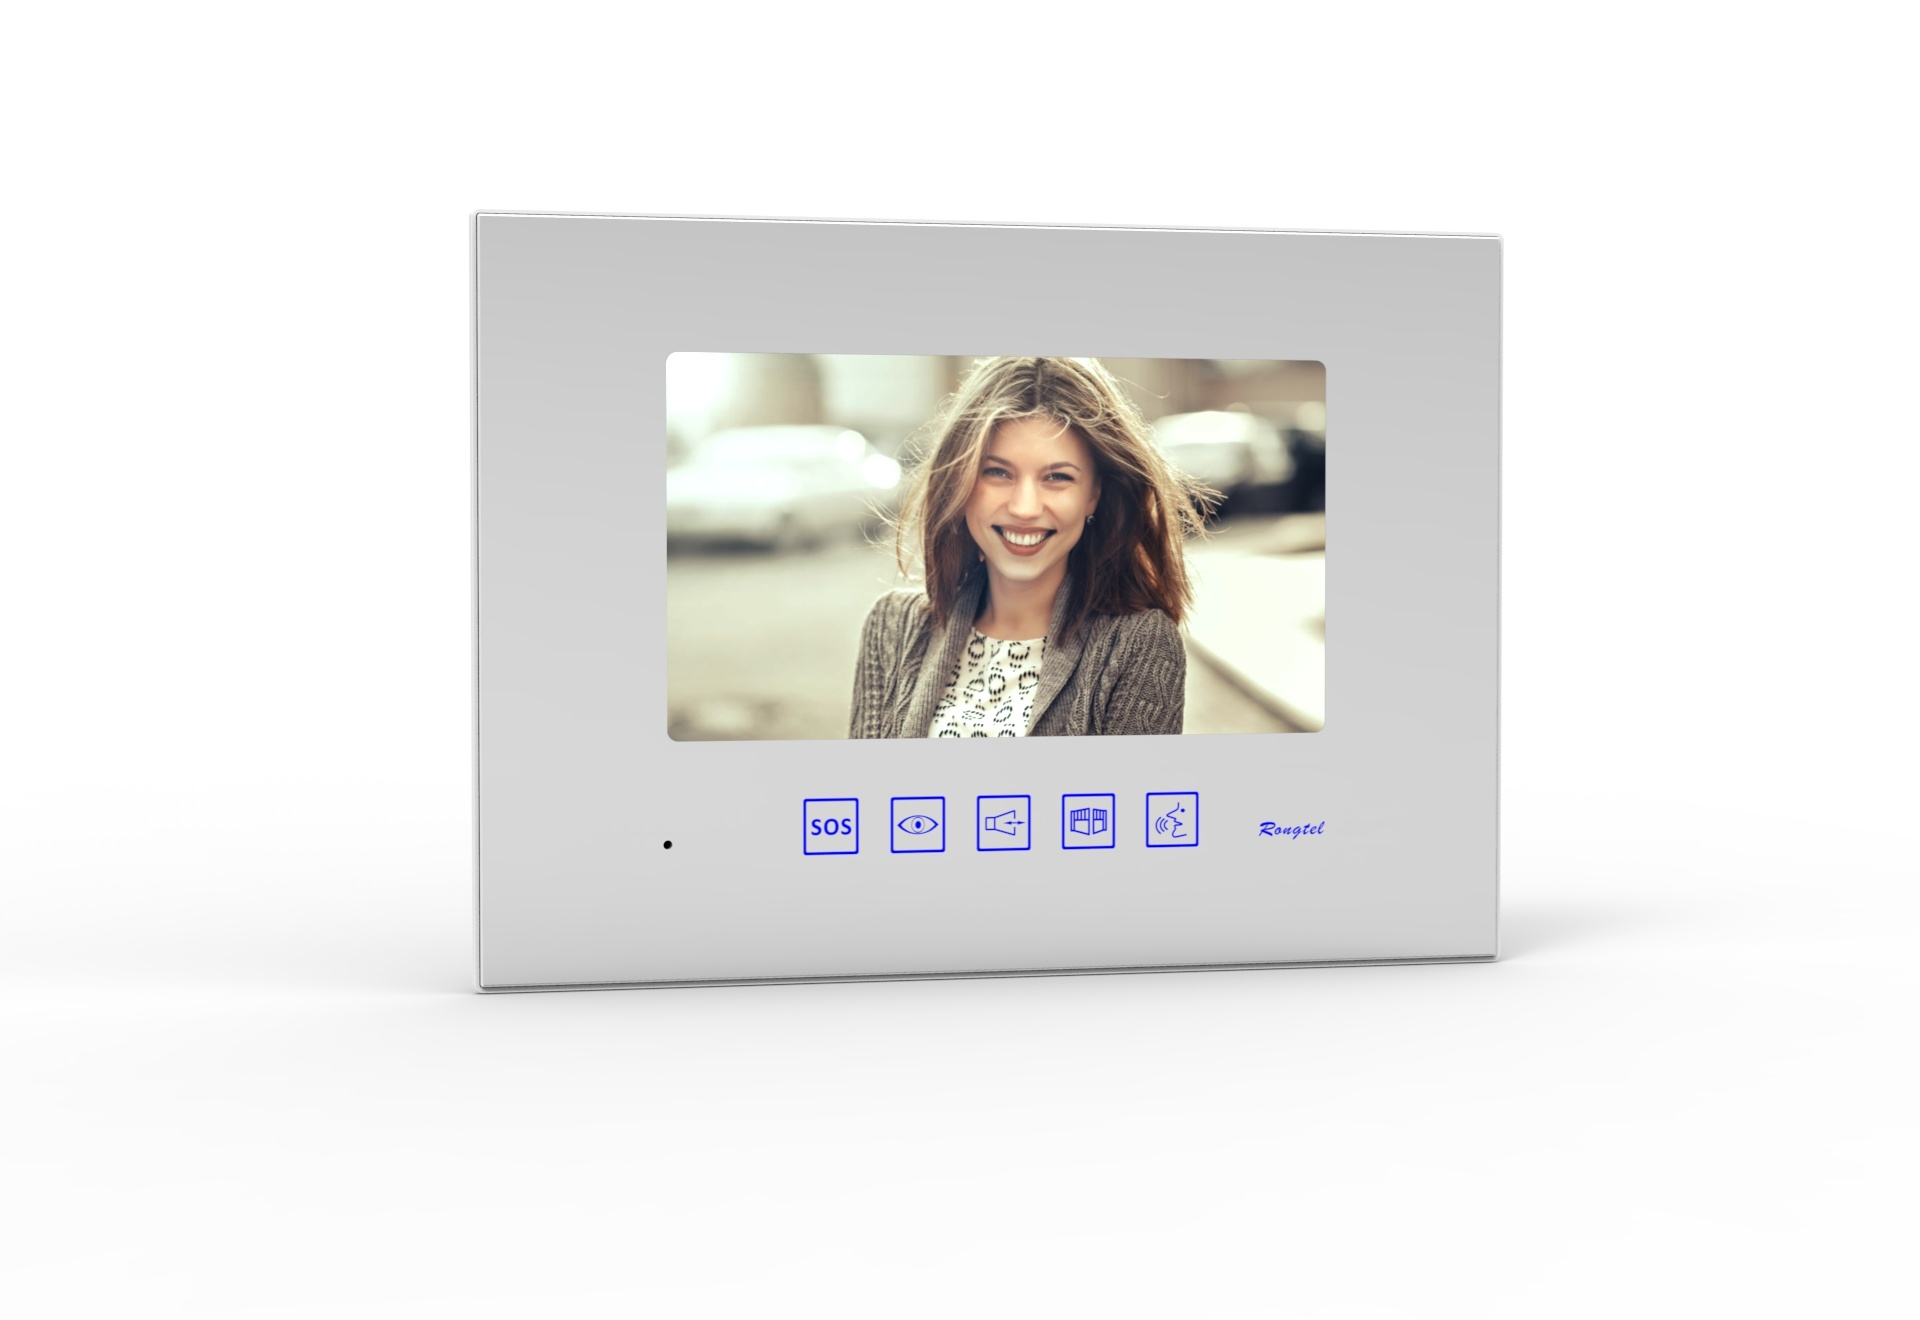 Wireless Video Intercom for Villa (PL960WL+MR880WL)